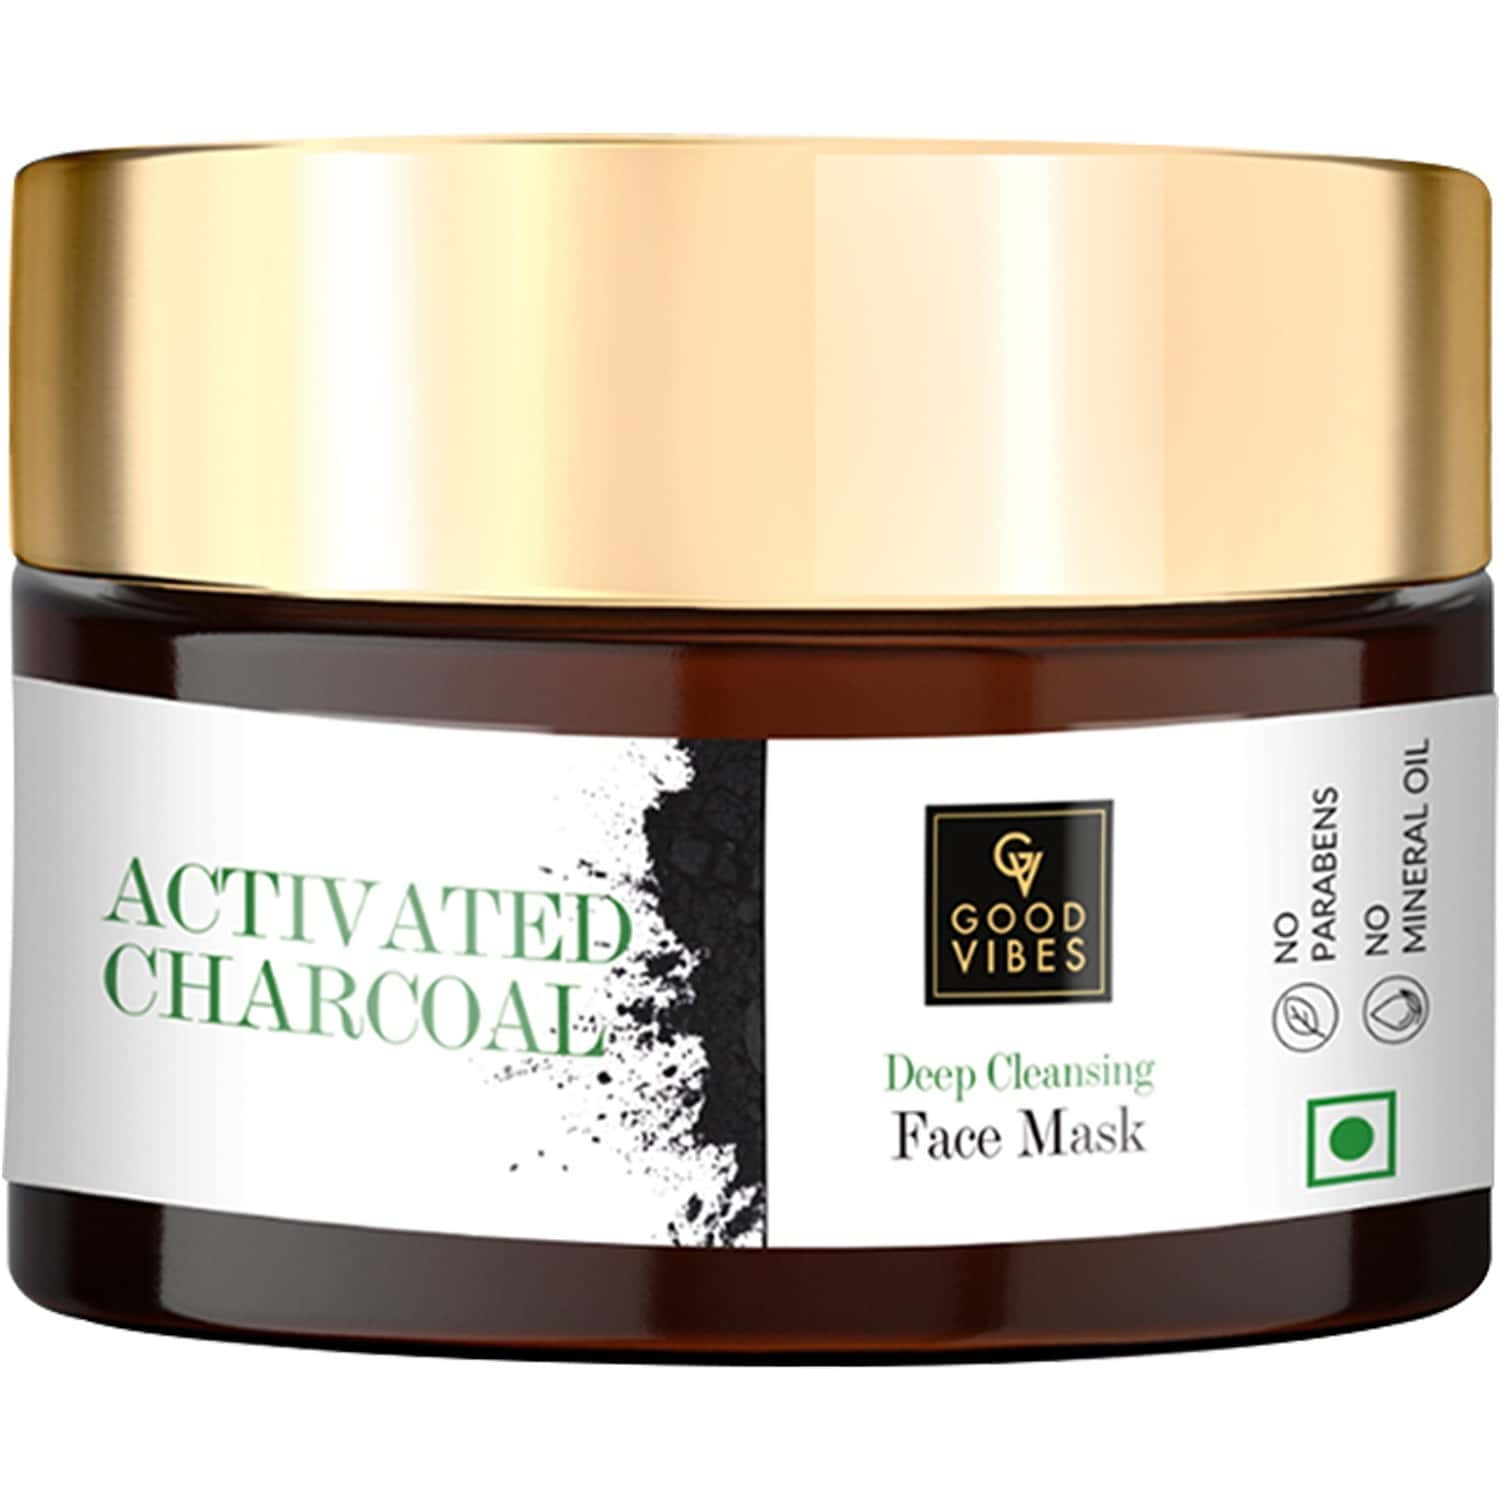 Good Vibes Deep Cleansing Face Mask - Activated Charcoal - 50 Gm